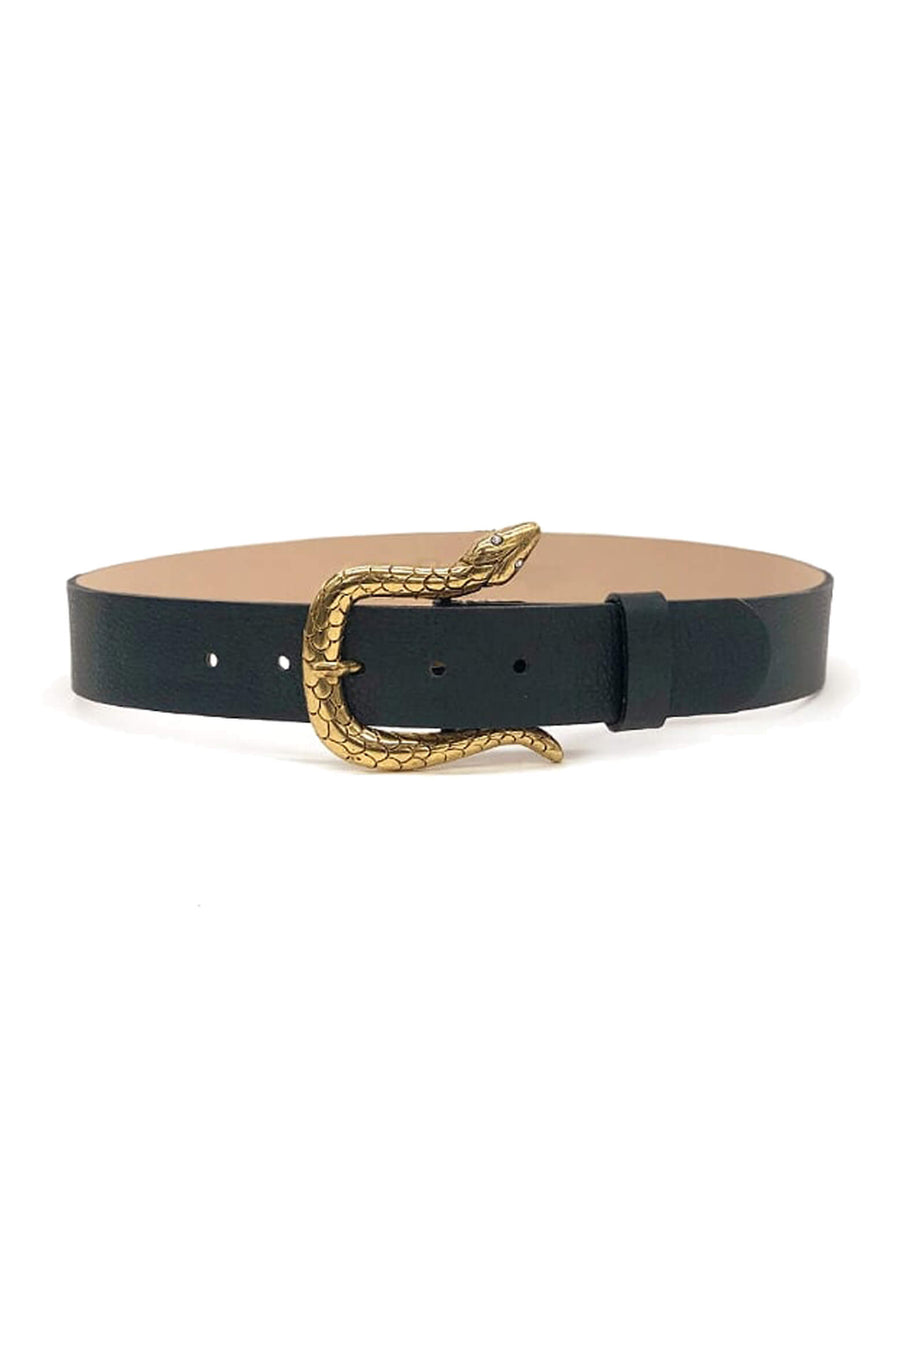 B-Low The Belt Mamba Belt in Black from The New Trend